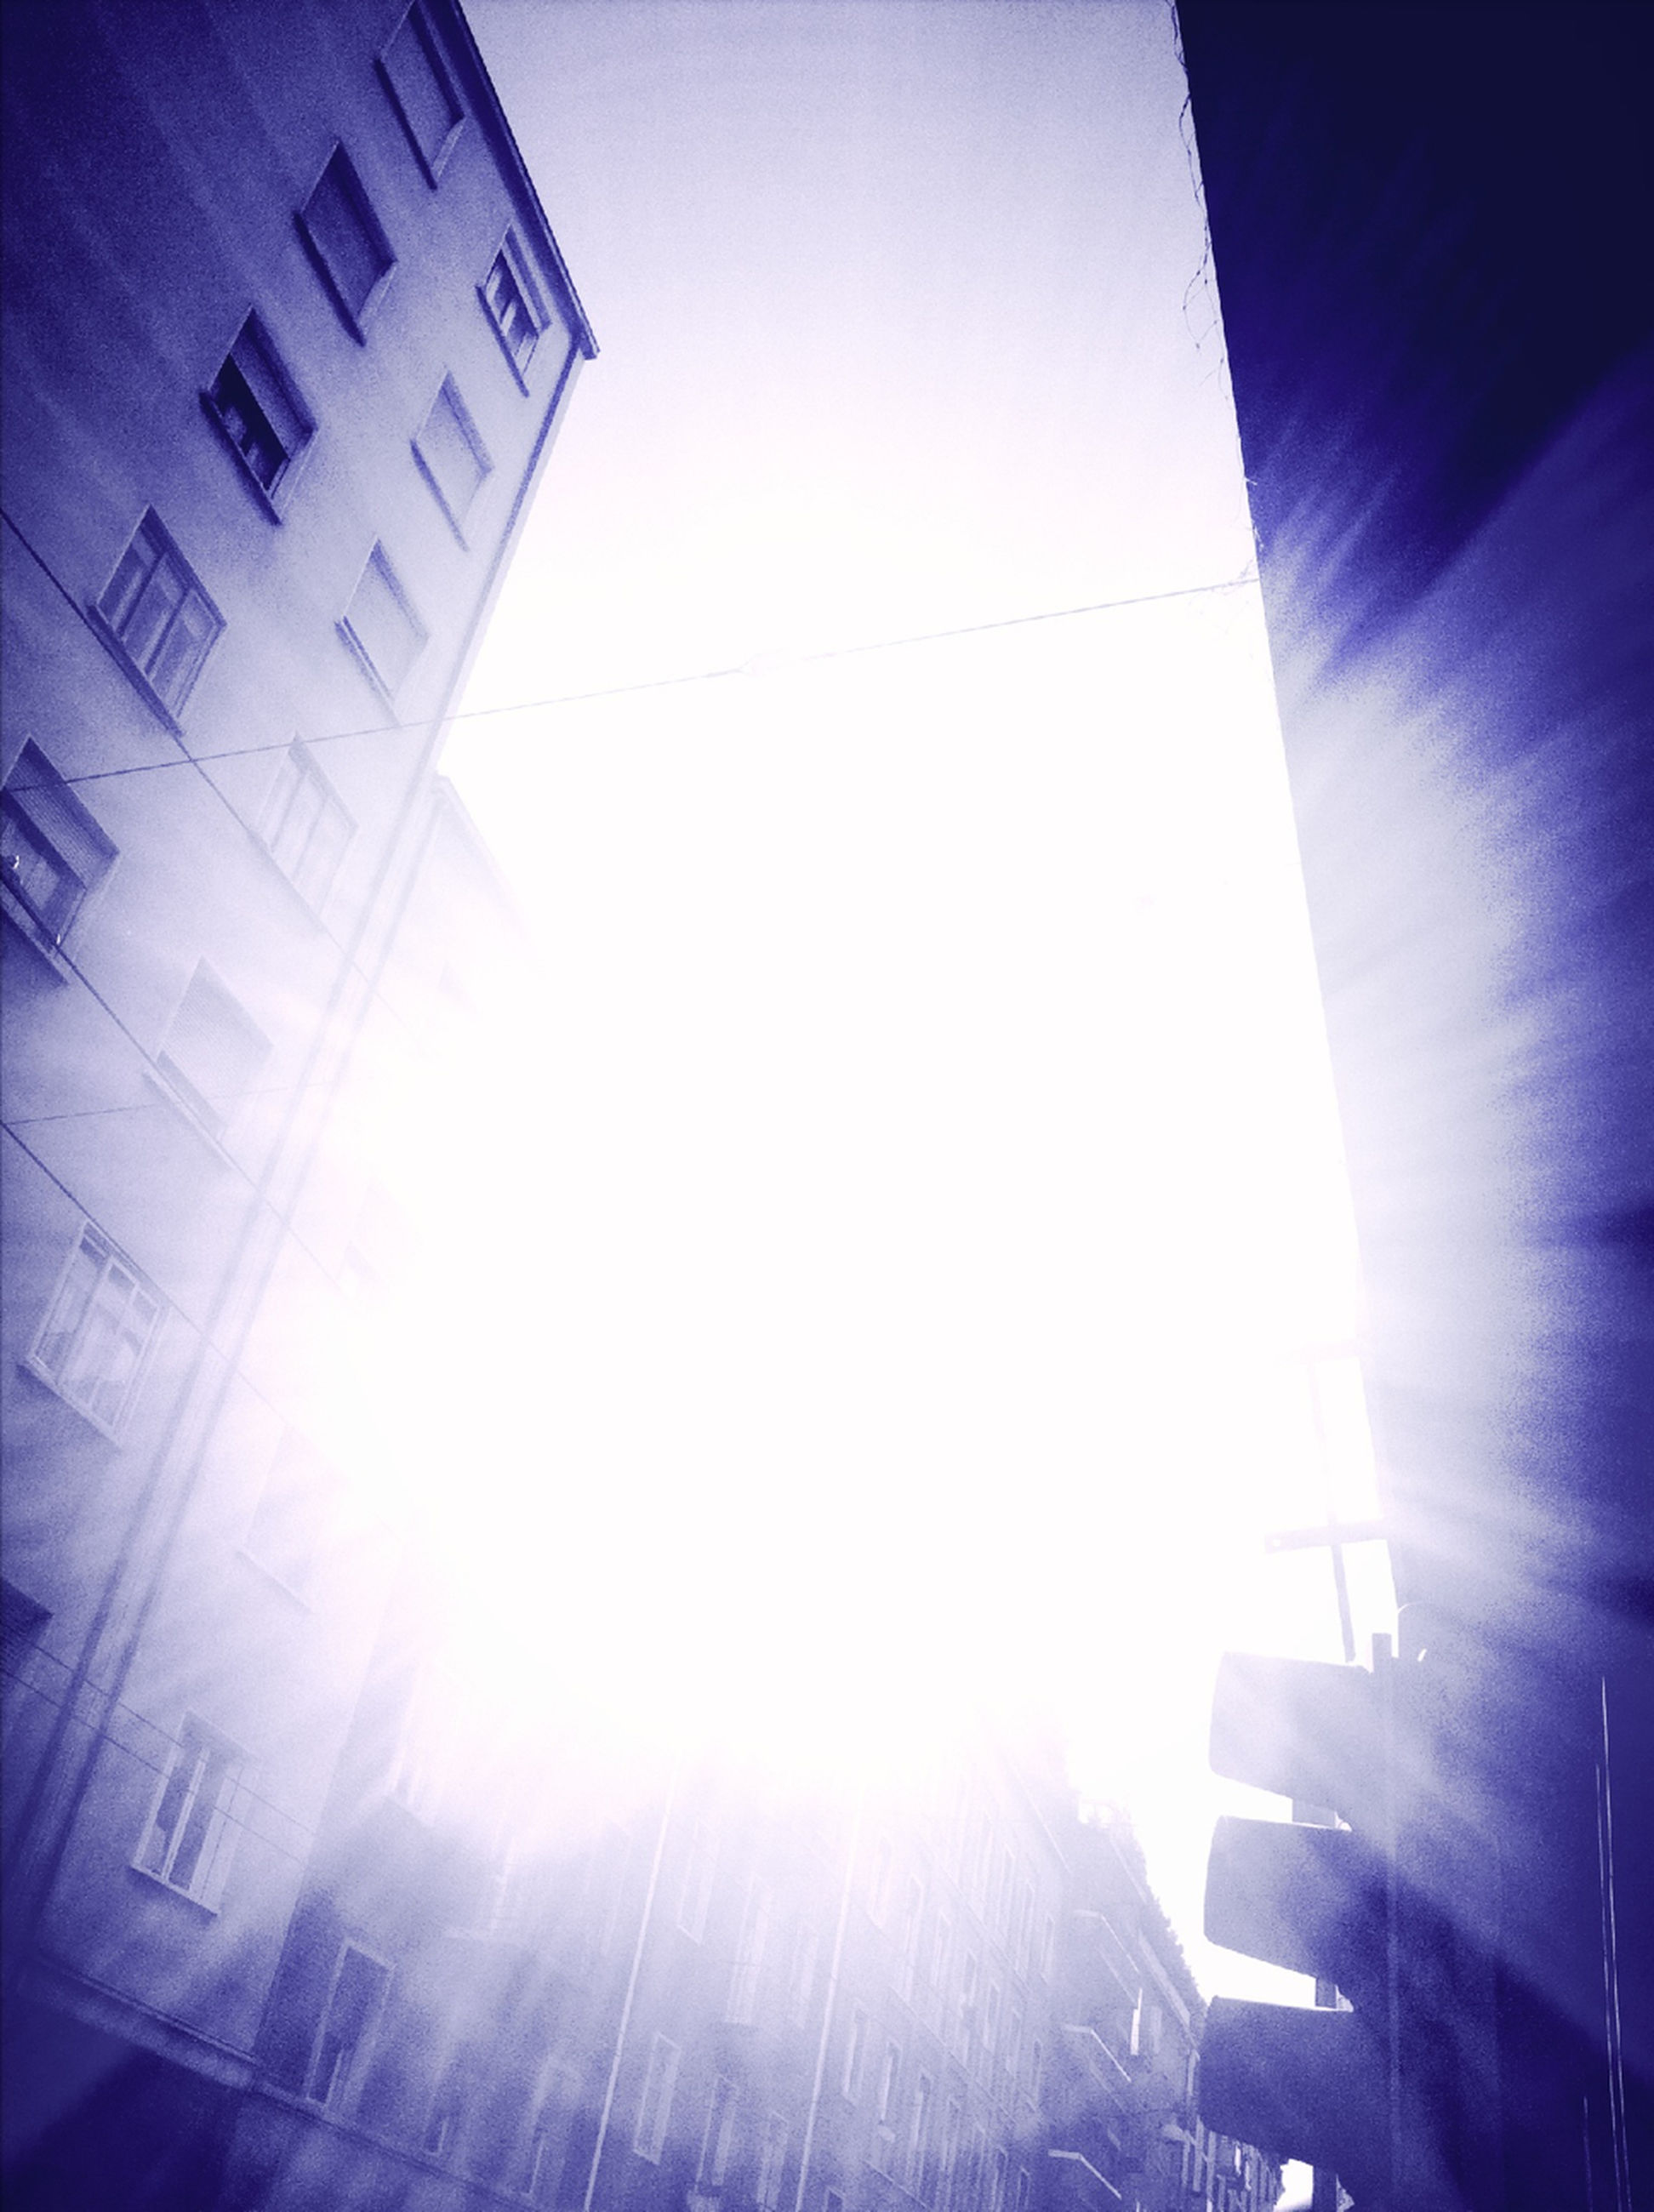 sun, sunbeam, building exterior, architecture, built structure, low angle view, lens flare, sunlight, bright, clear sky, sunny, brightly lit, sky, city, building, blue, vapor trail, day, outdoors, back lit